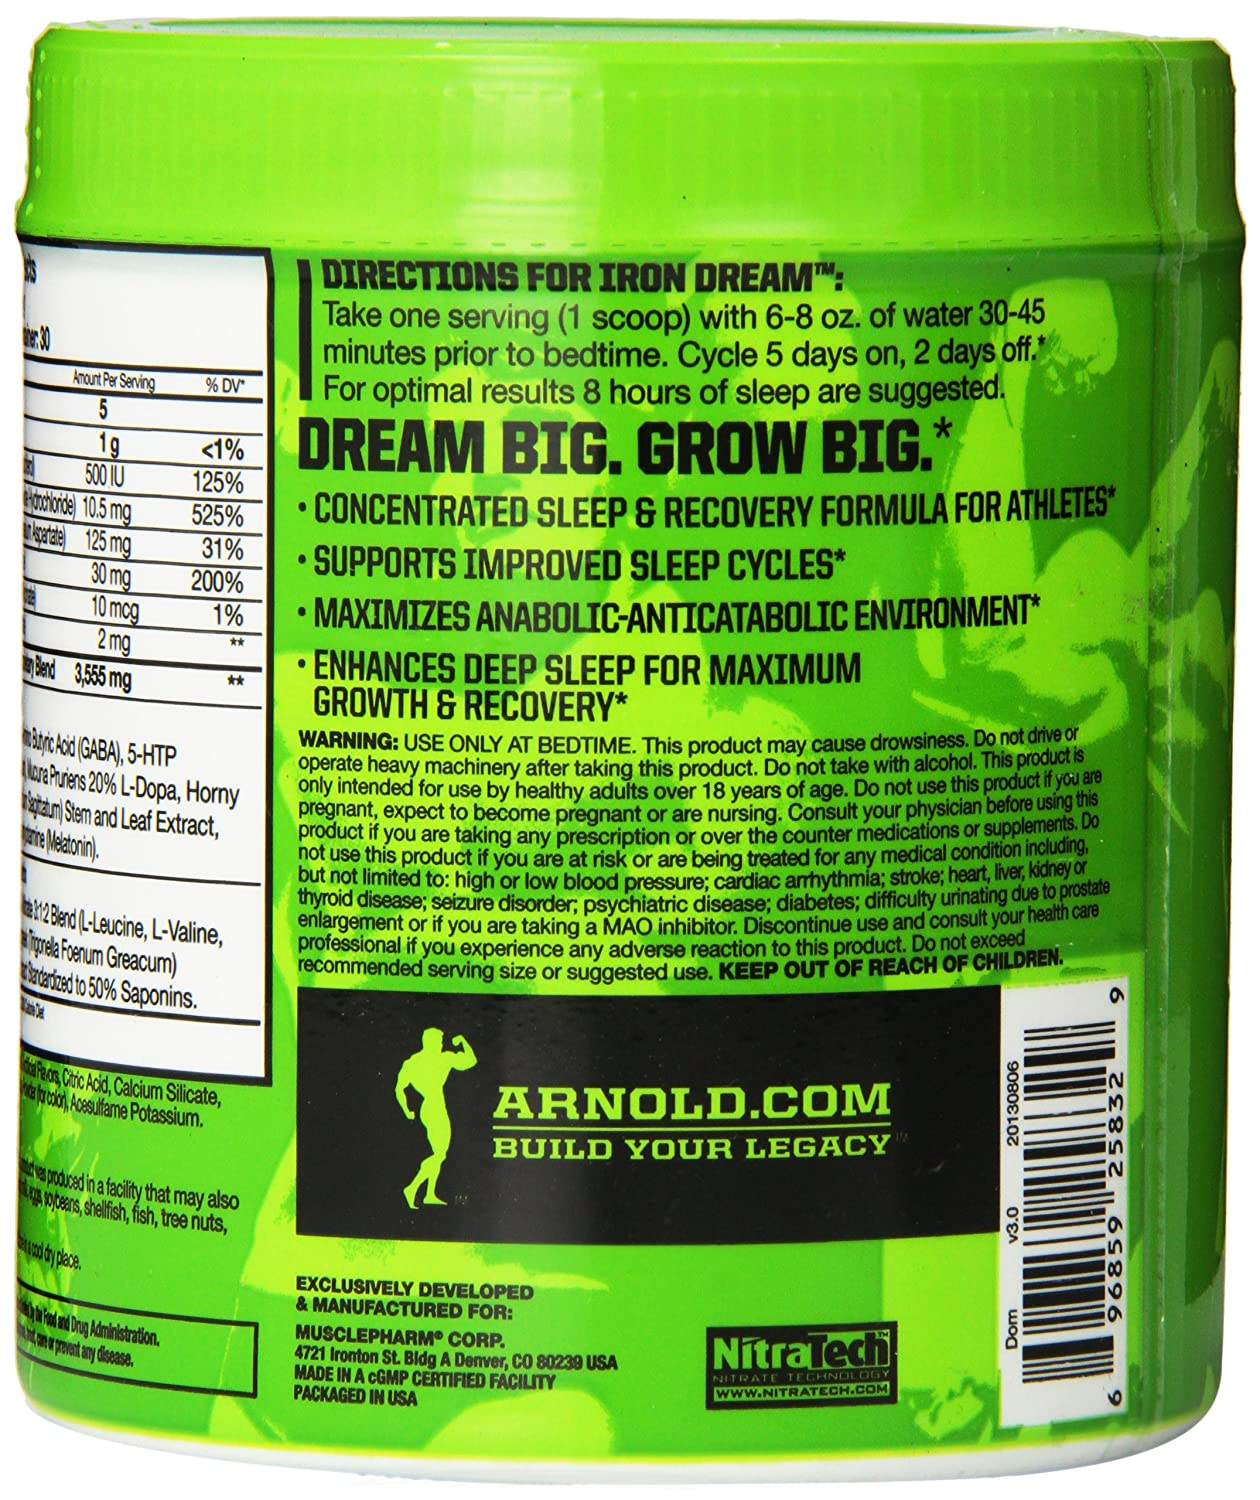 Amazon.com: Muscle Pharm Arnold Schwarzenegger Series Iron Dream Nighttime Recovery, Fruit Punch, 5.92 Ounce (30 Servings): Health & Personal Care